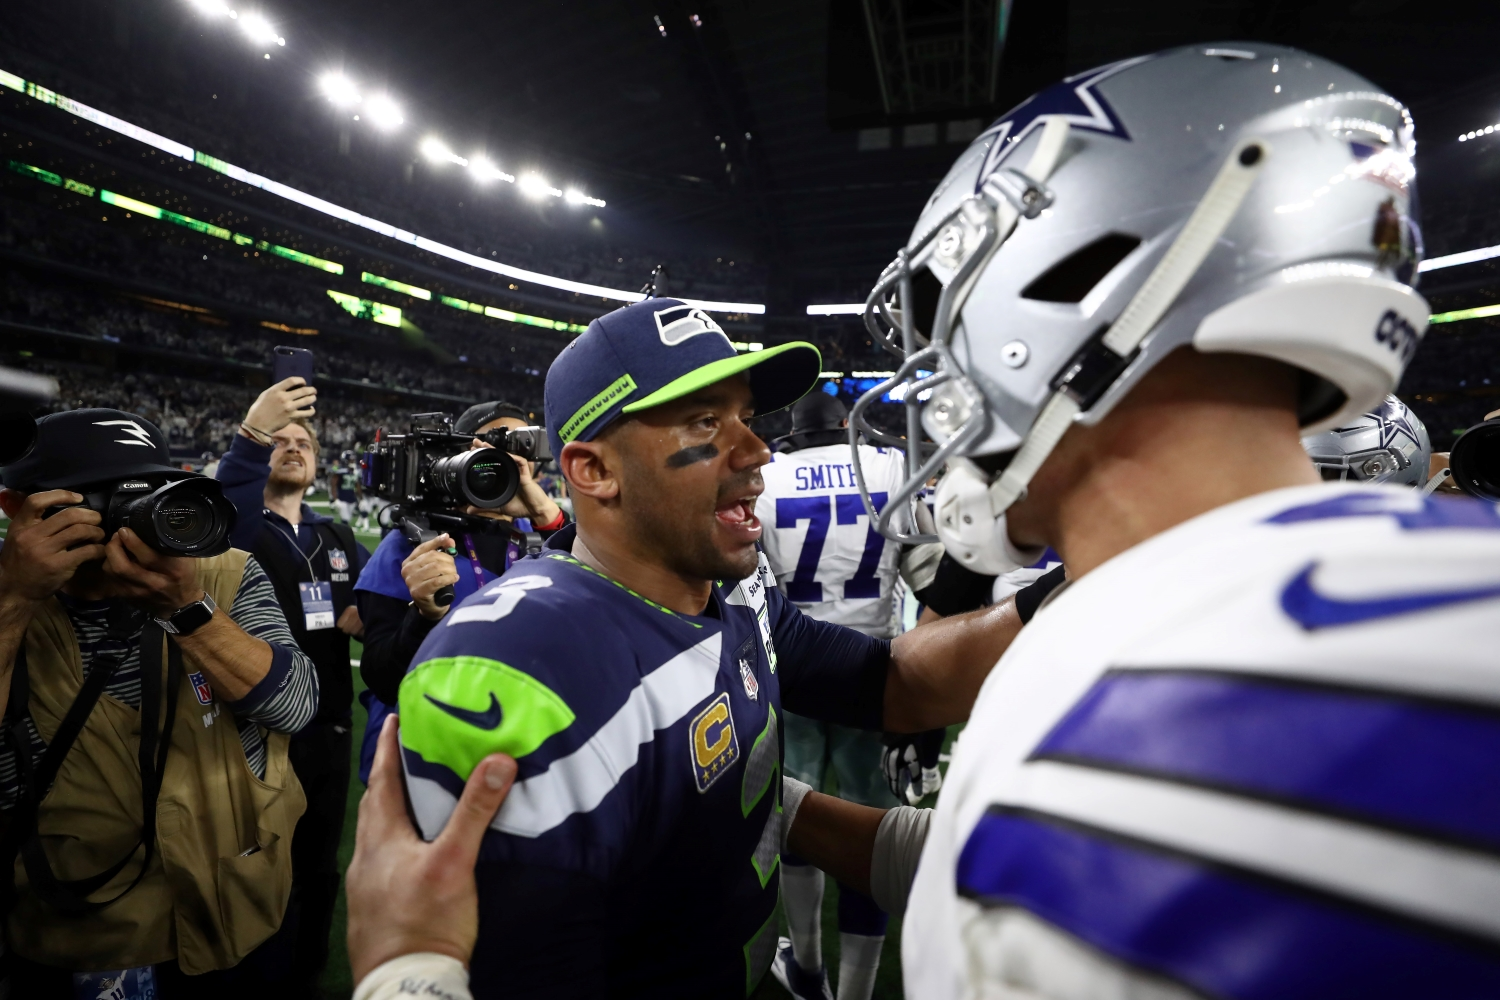 Dak Prescott of the Dallas Cowboys talks with Russell Wilson of the Seattle Seahawks after the Cowboys defeated the Seahawks 24-22 in the Wild Card Round.